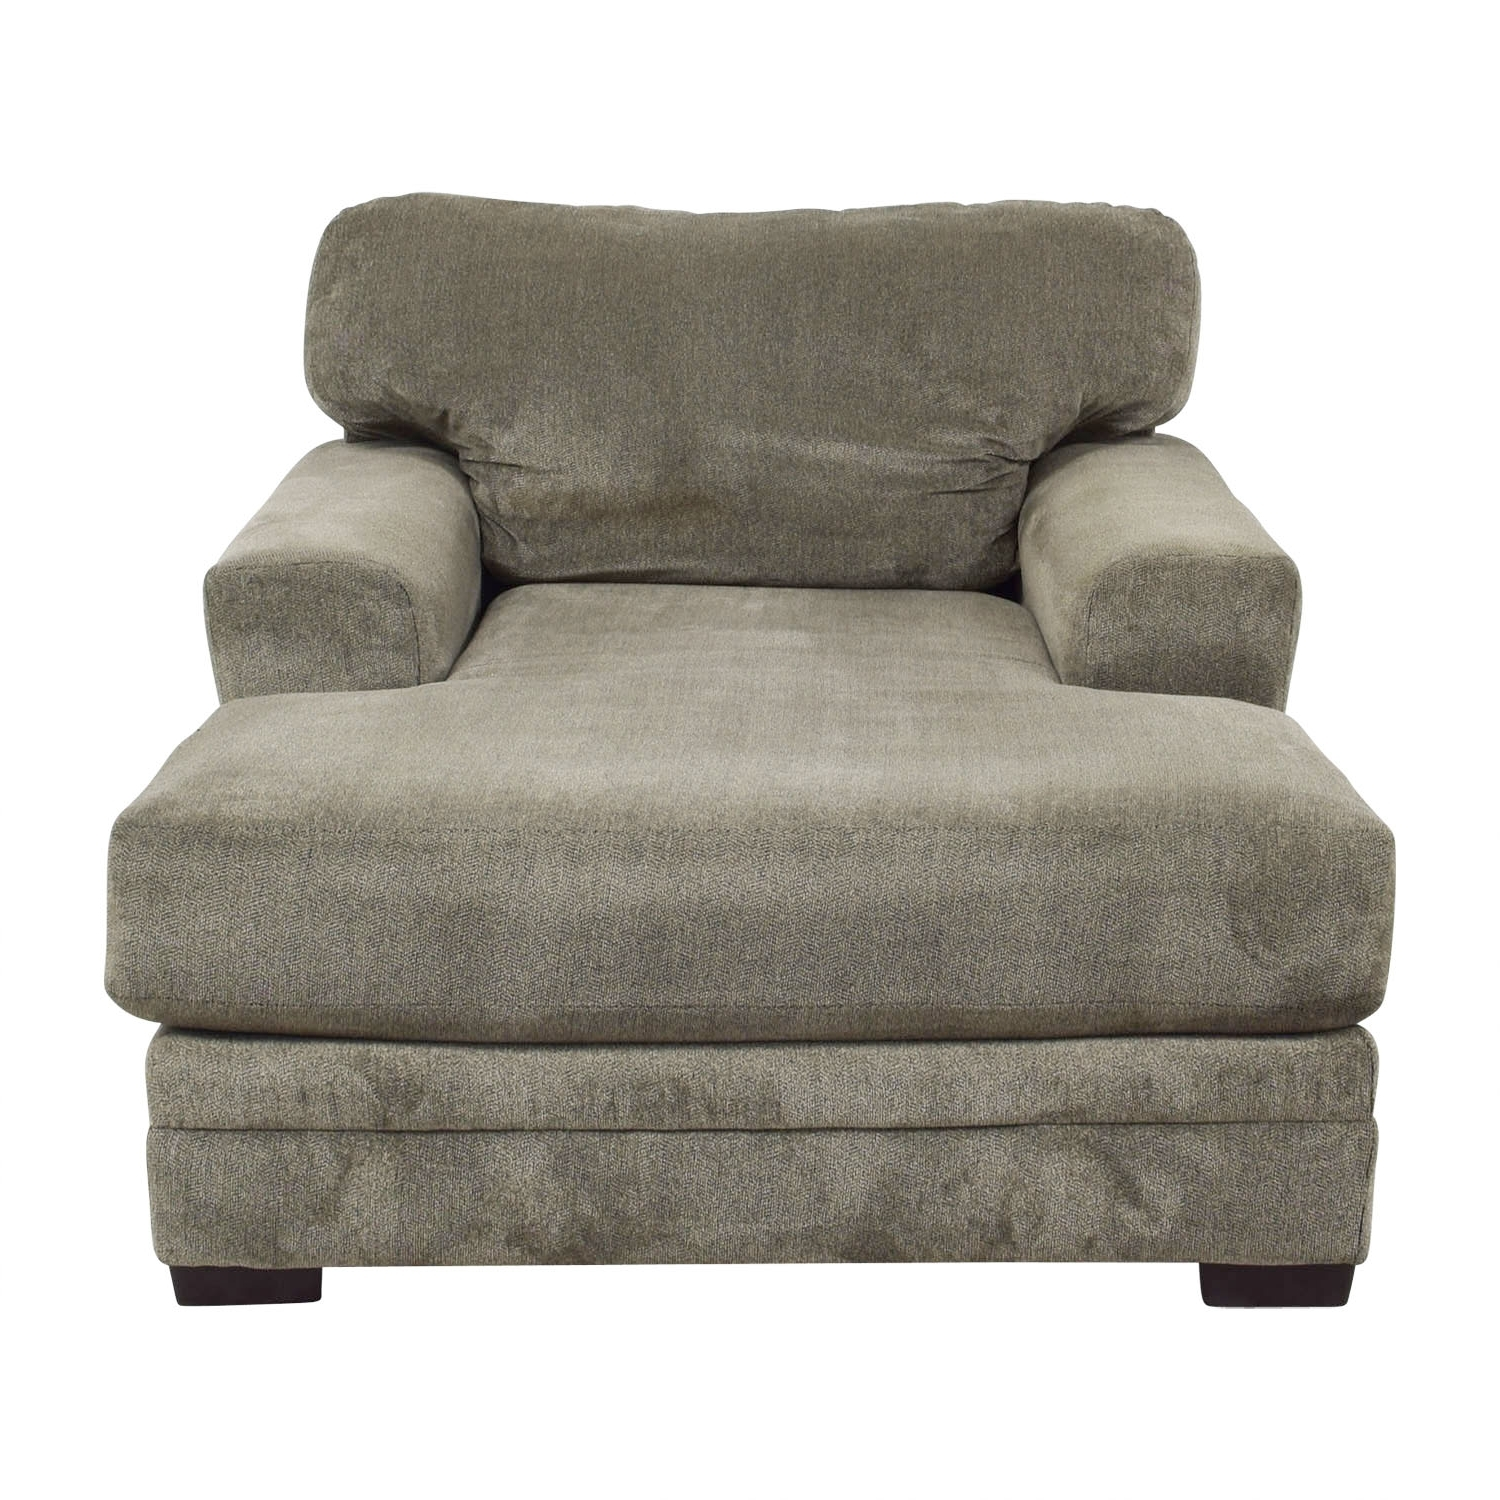 [%81% Off – Bob's Furniture Bob's Furniture Grey Chaise Lounge / Sofas Within Current Gray Chaise Lounges|Gray Chaise Lounges Inside Popular 81% Off – Bob's Furniture Bob's Furniture Grey Chaise Lounge / Sofas|Widely Used Gray Chaise Lounges Pertaining To 81% Off – Bob's Furniture Bob's Furniture Grey Chaise Lounge / Sofas|Trendy 81% Off – Bob's Furniture Bob's Furniture Grey Chaise Lounge / Sofas For Gray Chaise Lounges%] (View 1 of 15)